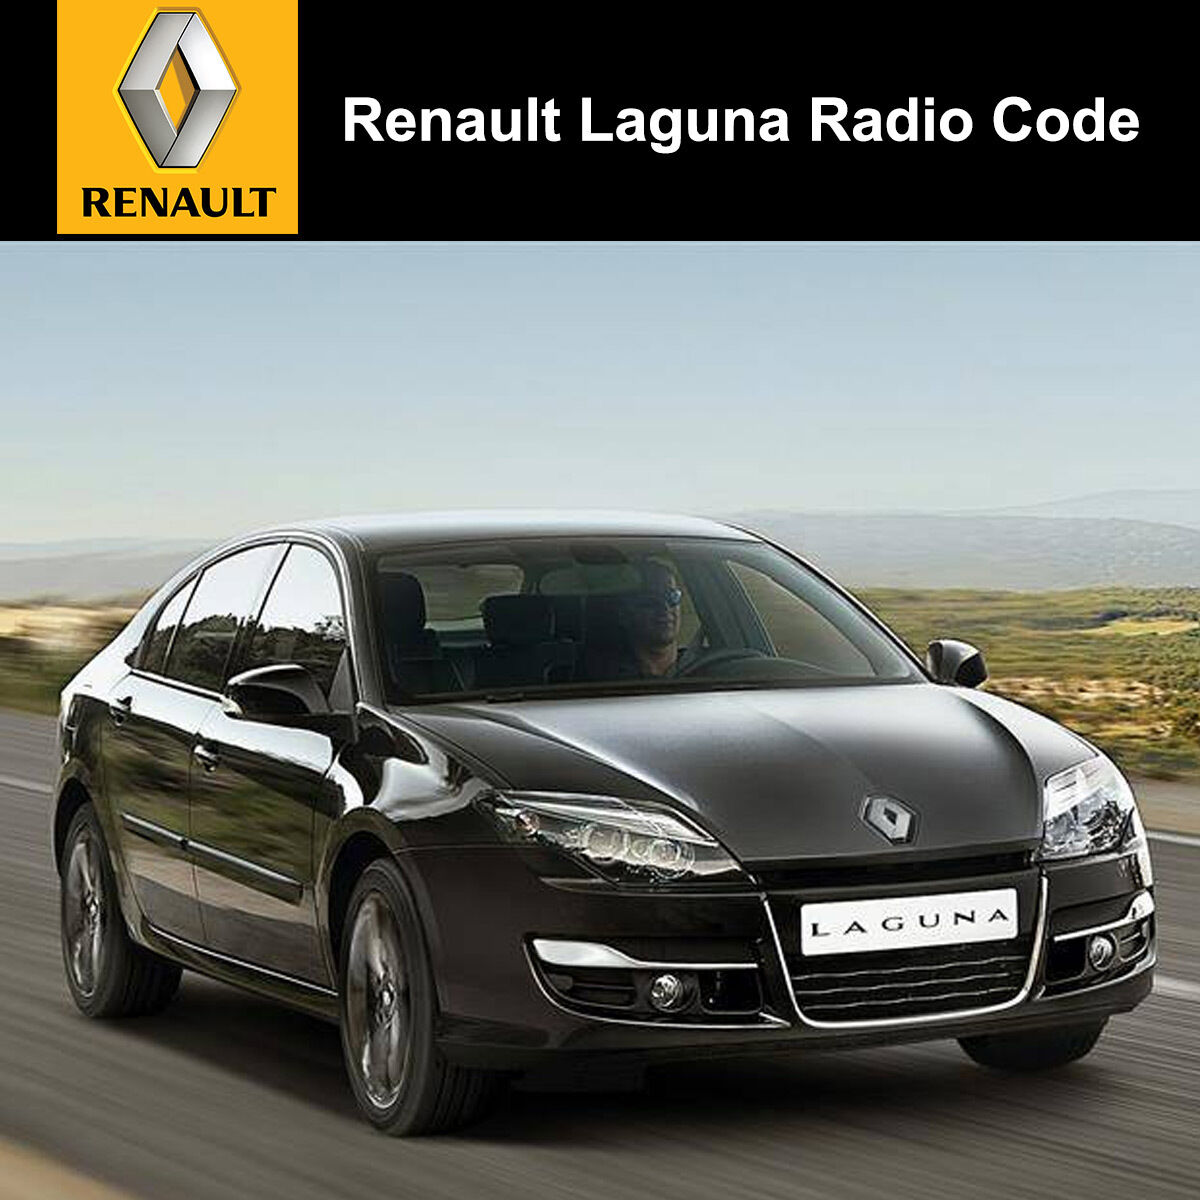 Details about Renault Laguna Radio Code Stereo Decode Car Unlock Fast  Service UK All Vehicles